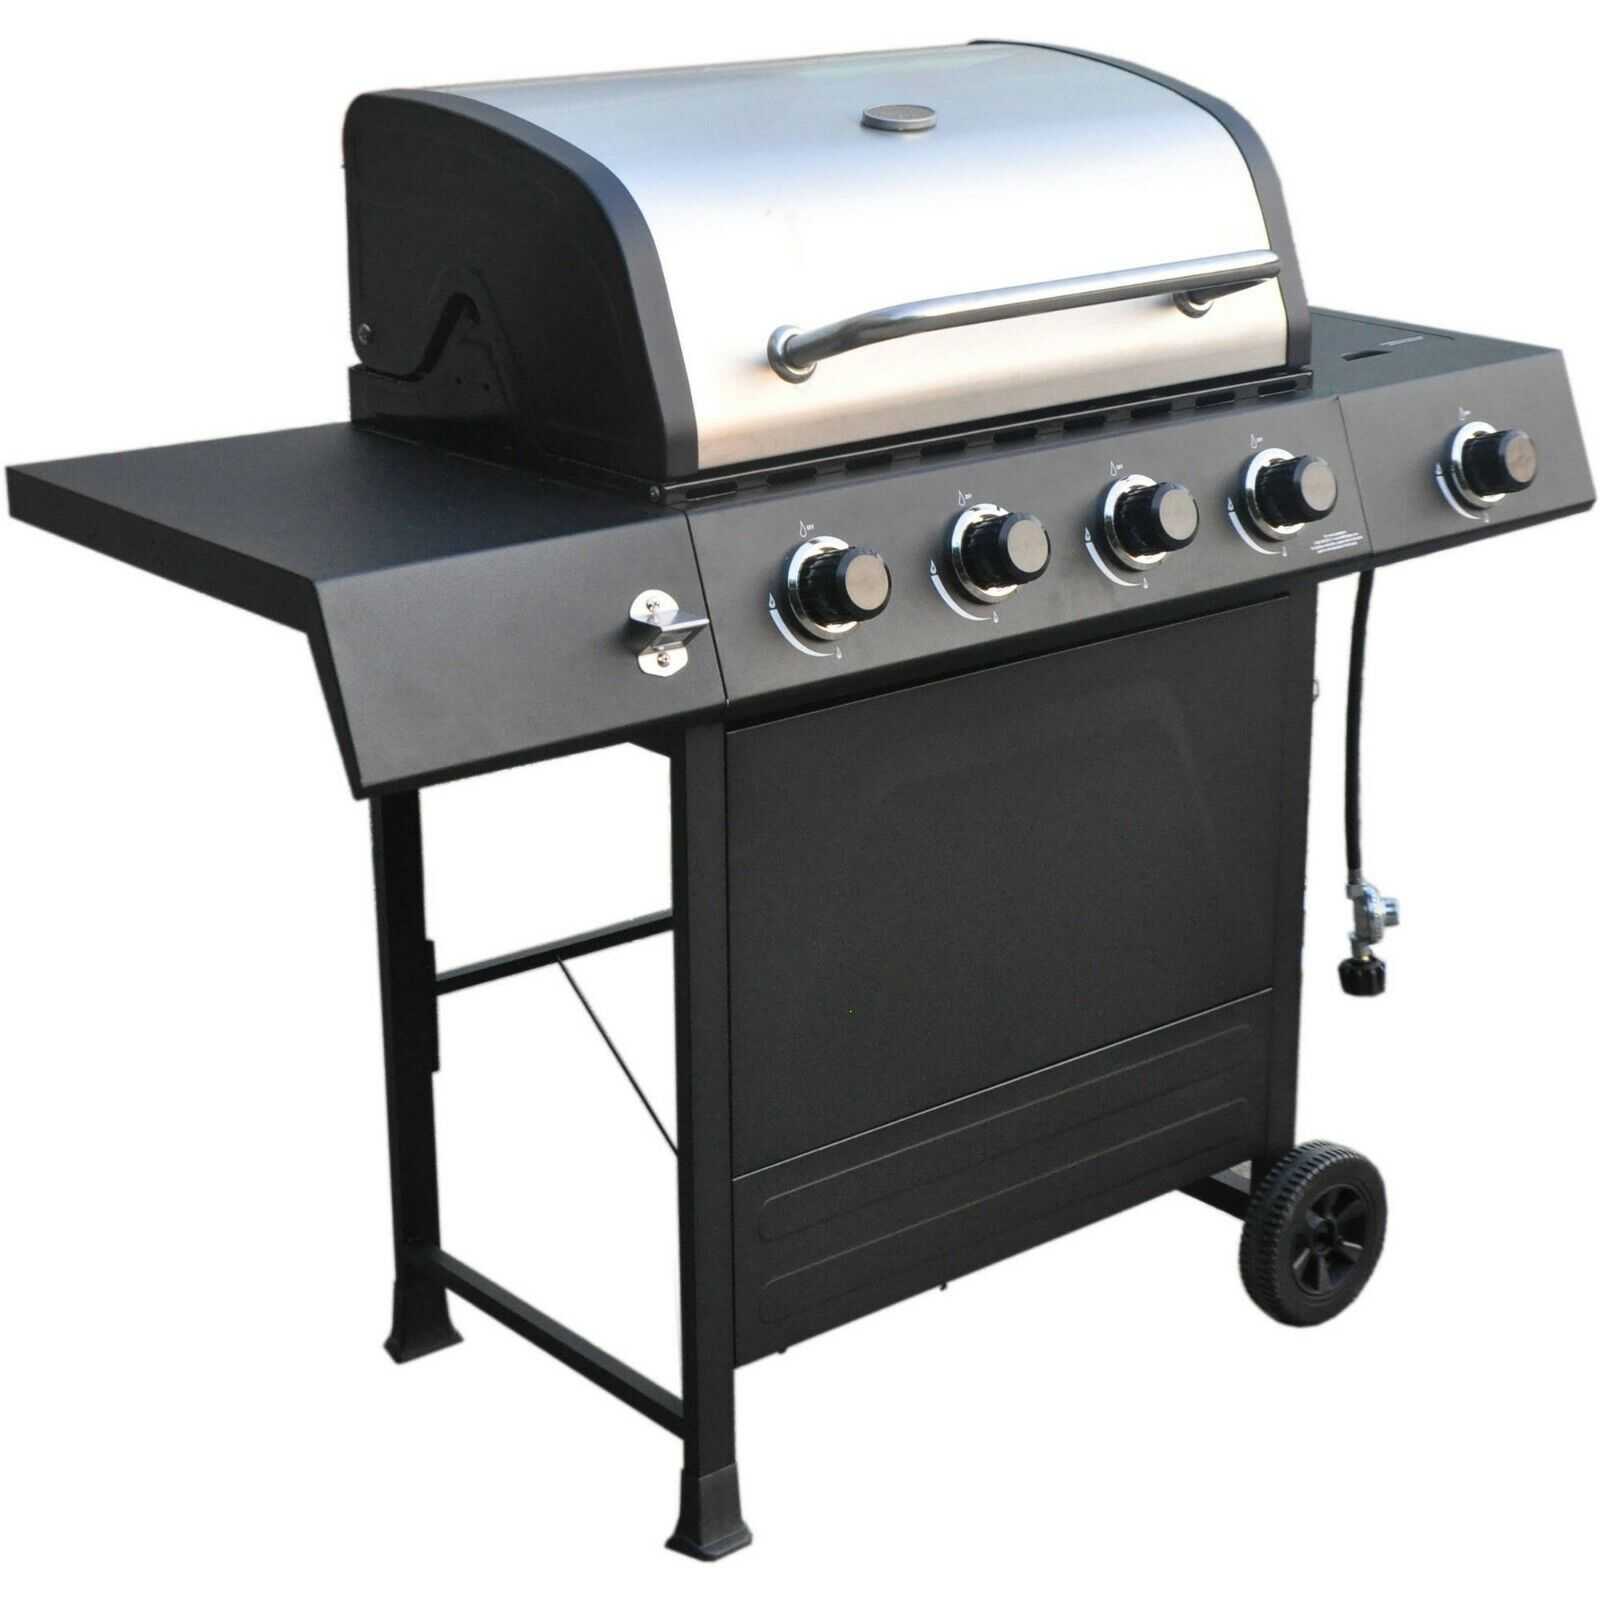 RevoAce 4-Burner LP Gas Grill with Side Burner, Stainless Steel & Black